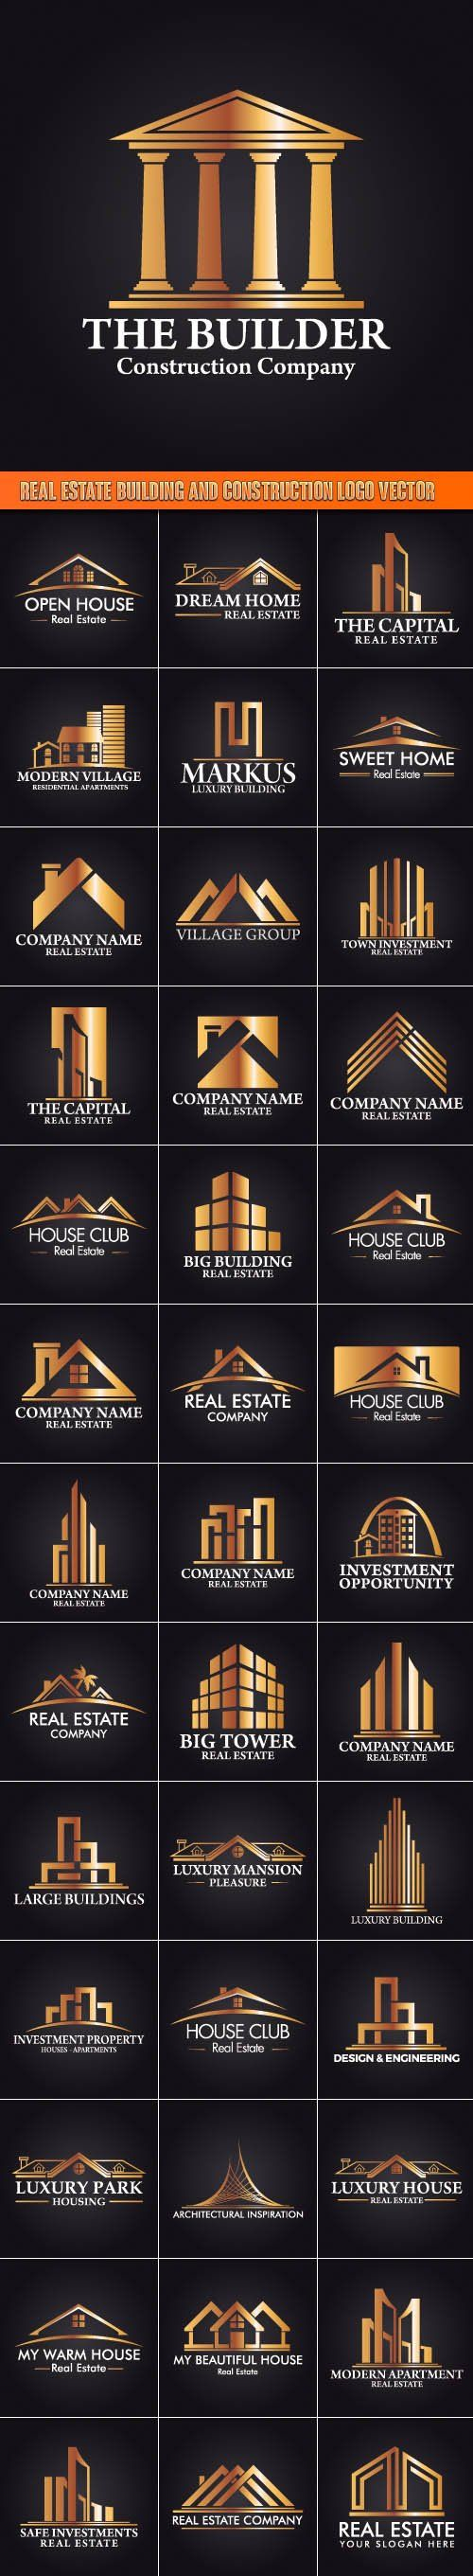 Real Estate Building and Construction Logo Vector